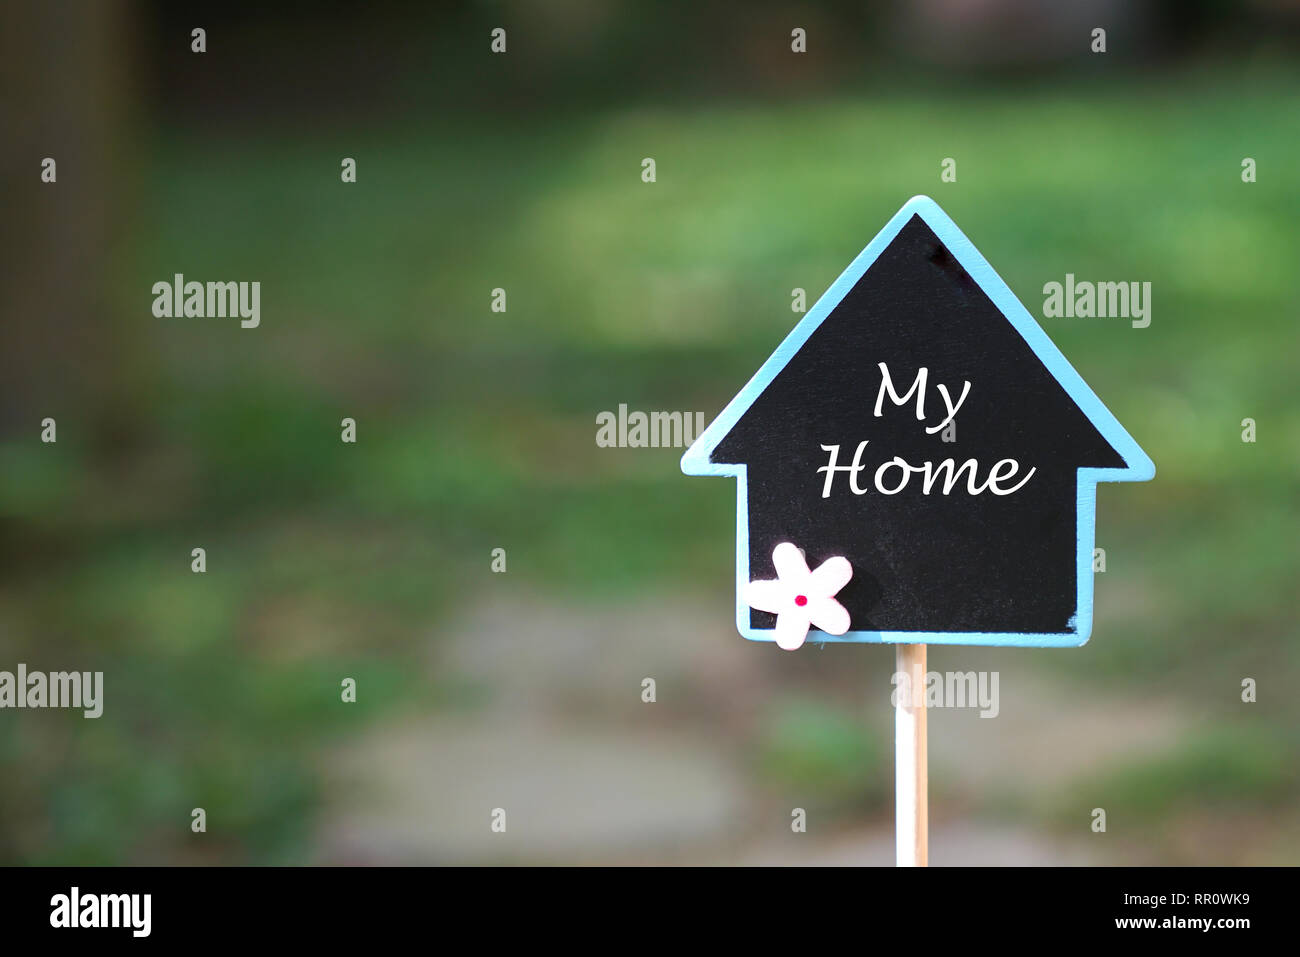 Real estate concept: finding and owning my home in a beautiful area - Stock Image